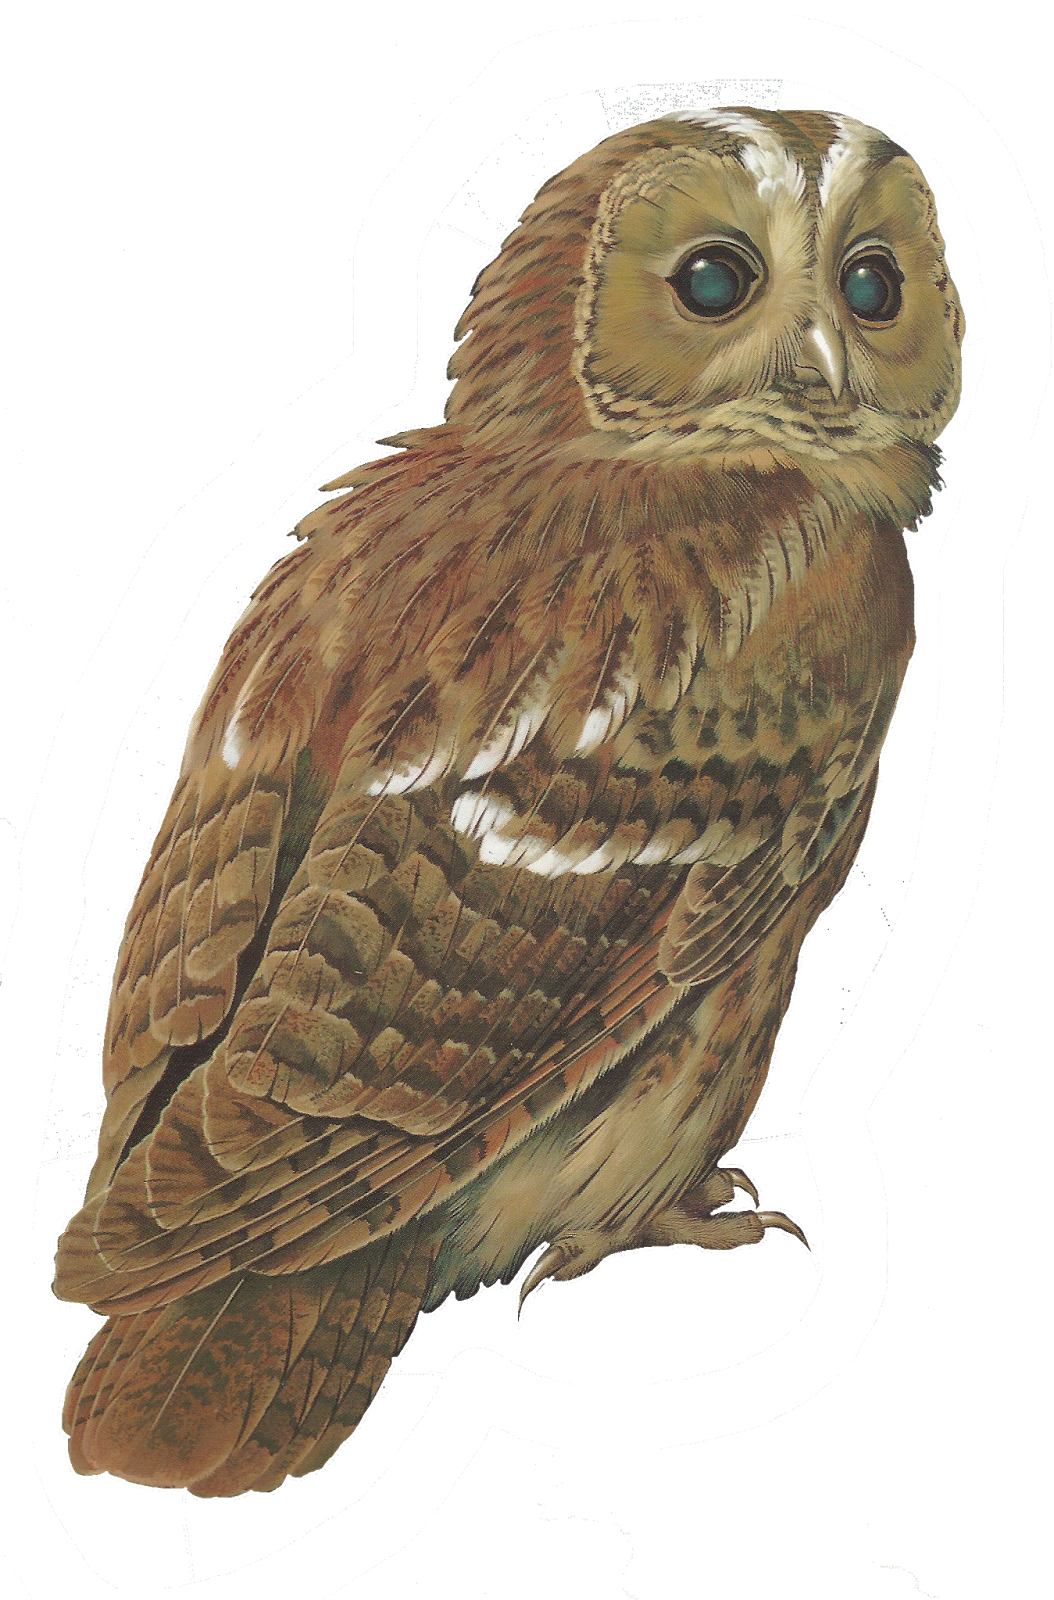 Tawny owl clipart - Clipground